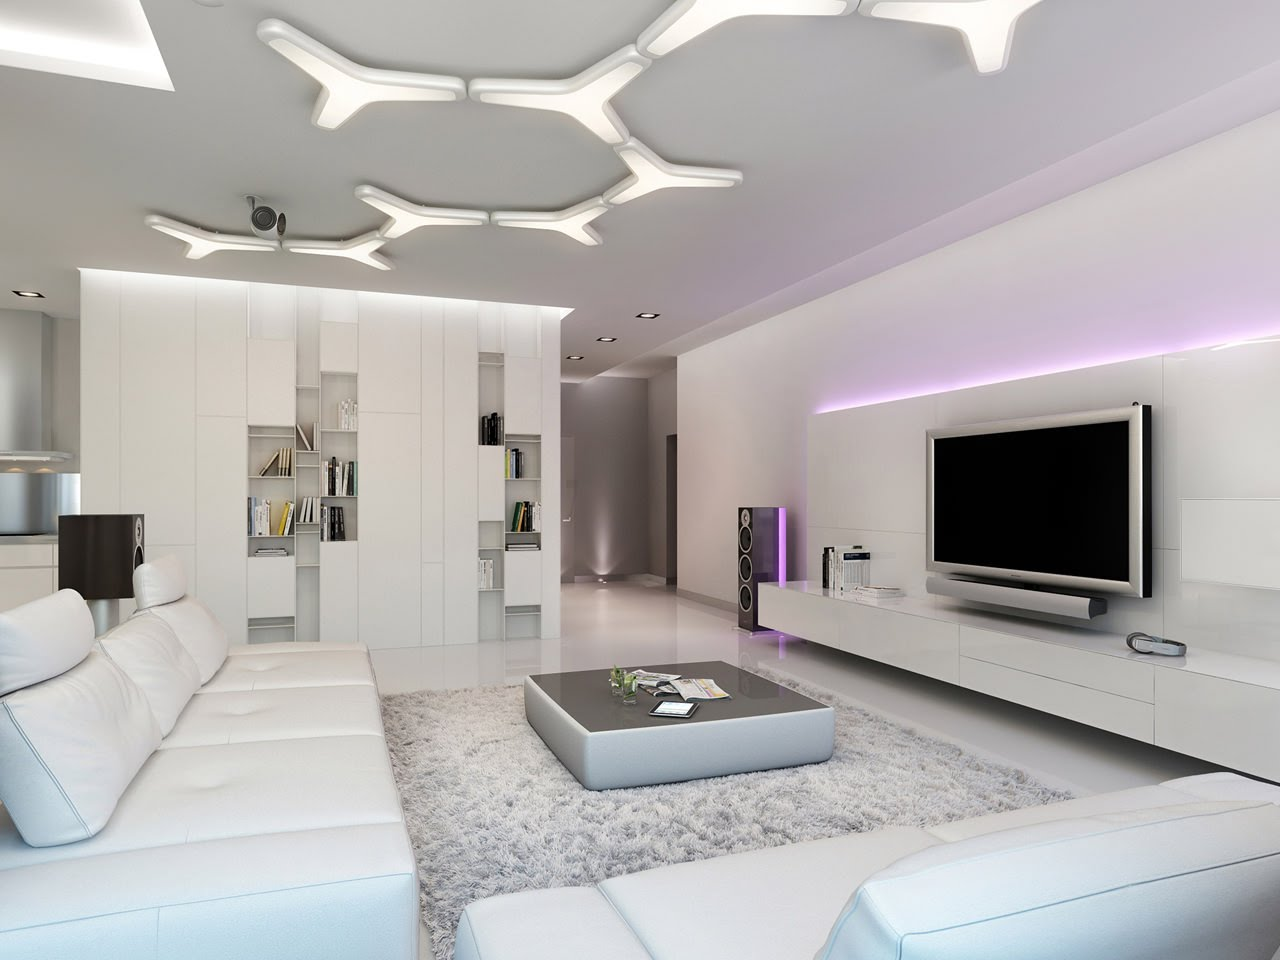 Decorar un apartamento moderno - Decorar un salon moderno ...